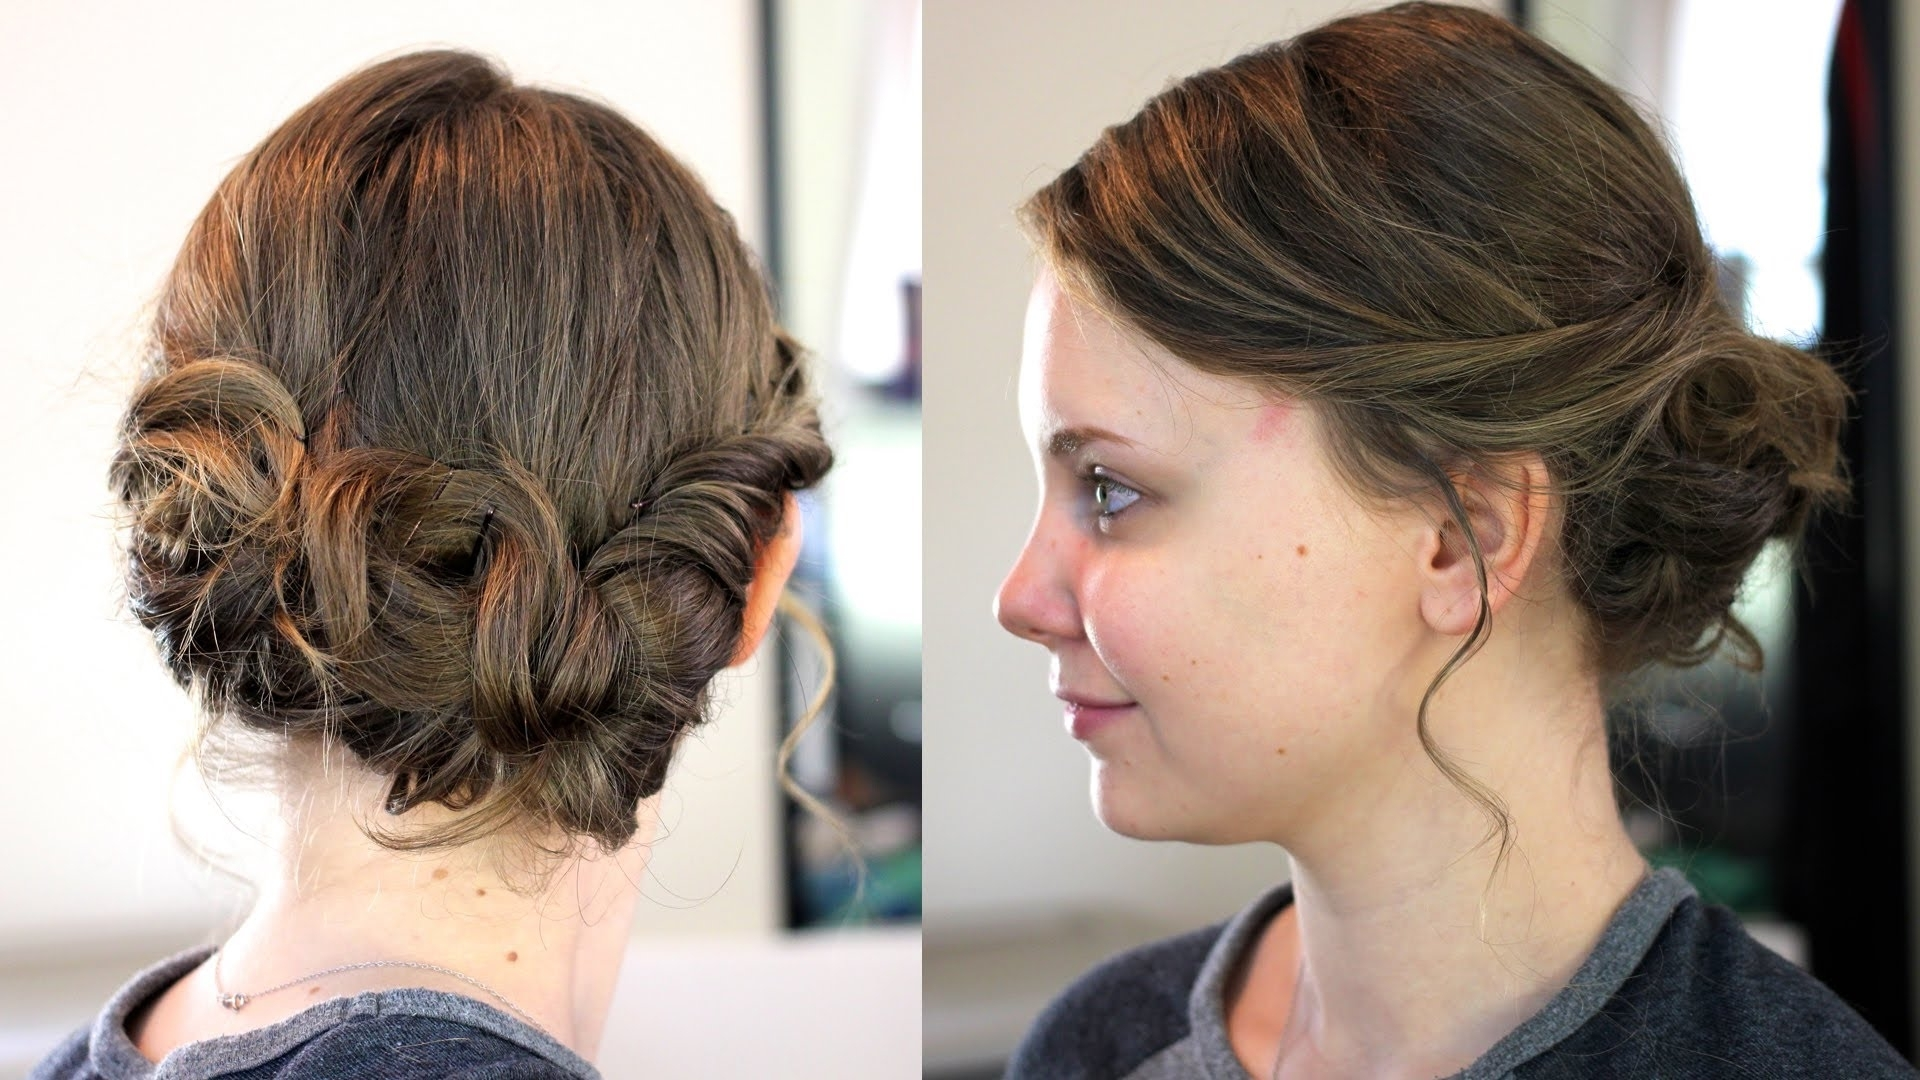 Easy Updo For Medium/shoulder Length Hair – Youtube With Regard To Updo Hairstyles For Medium Length Hair (View 9 of 15)